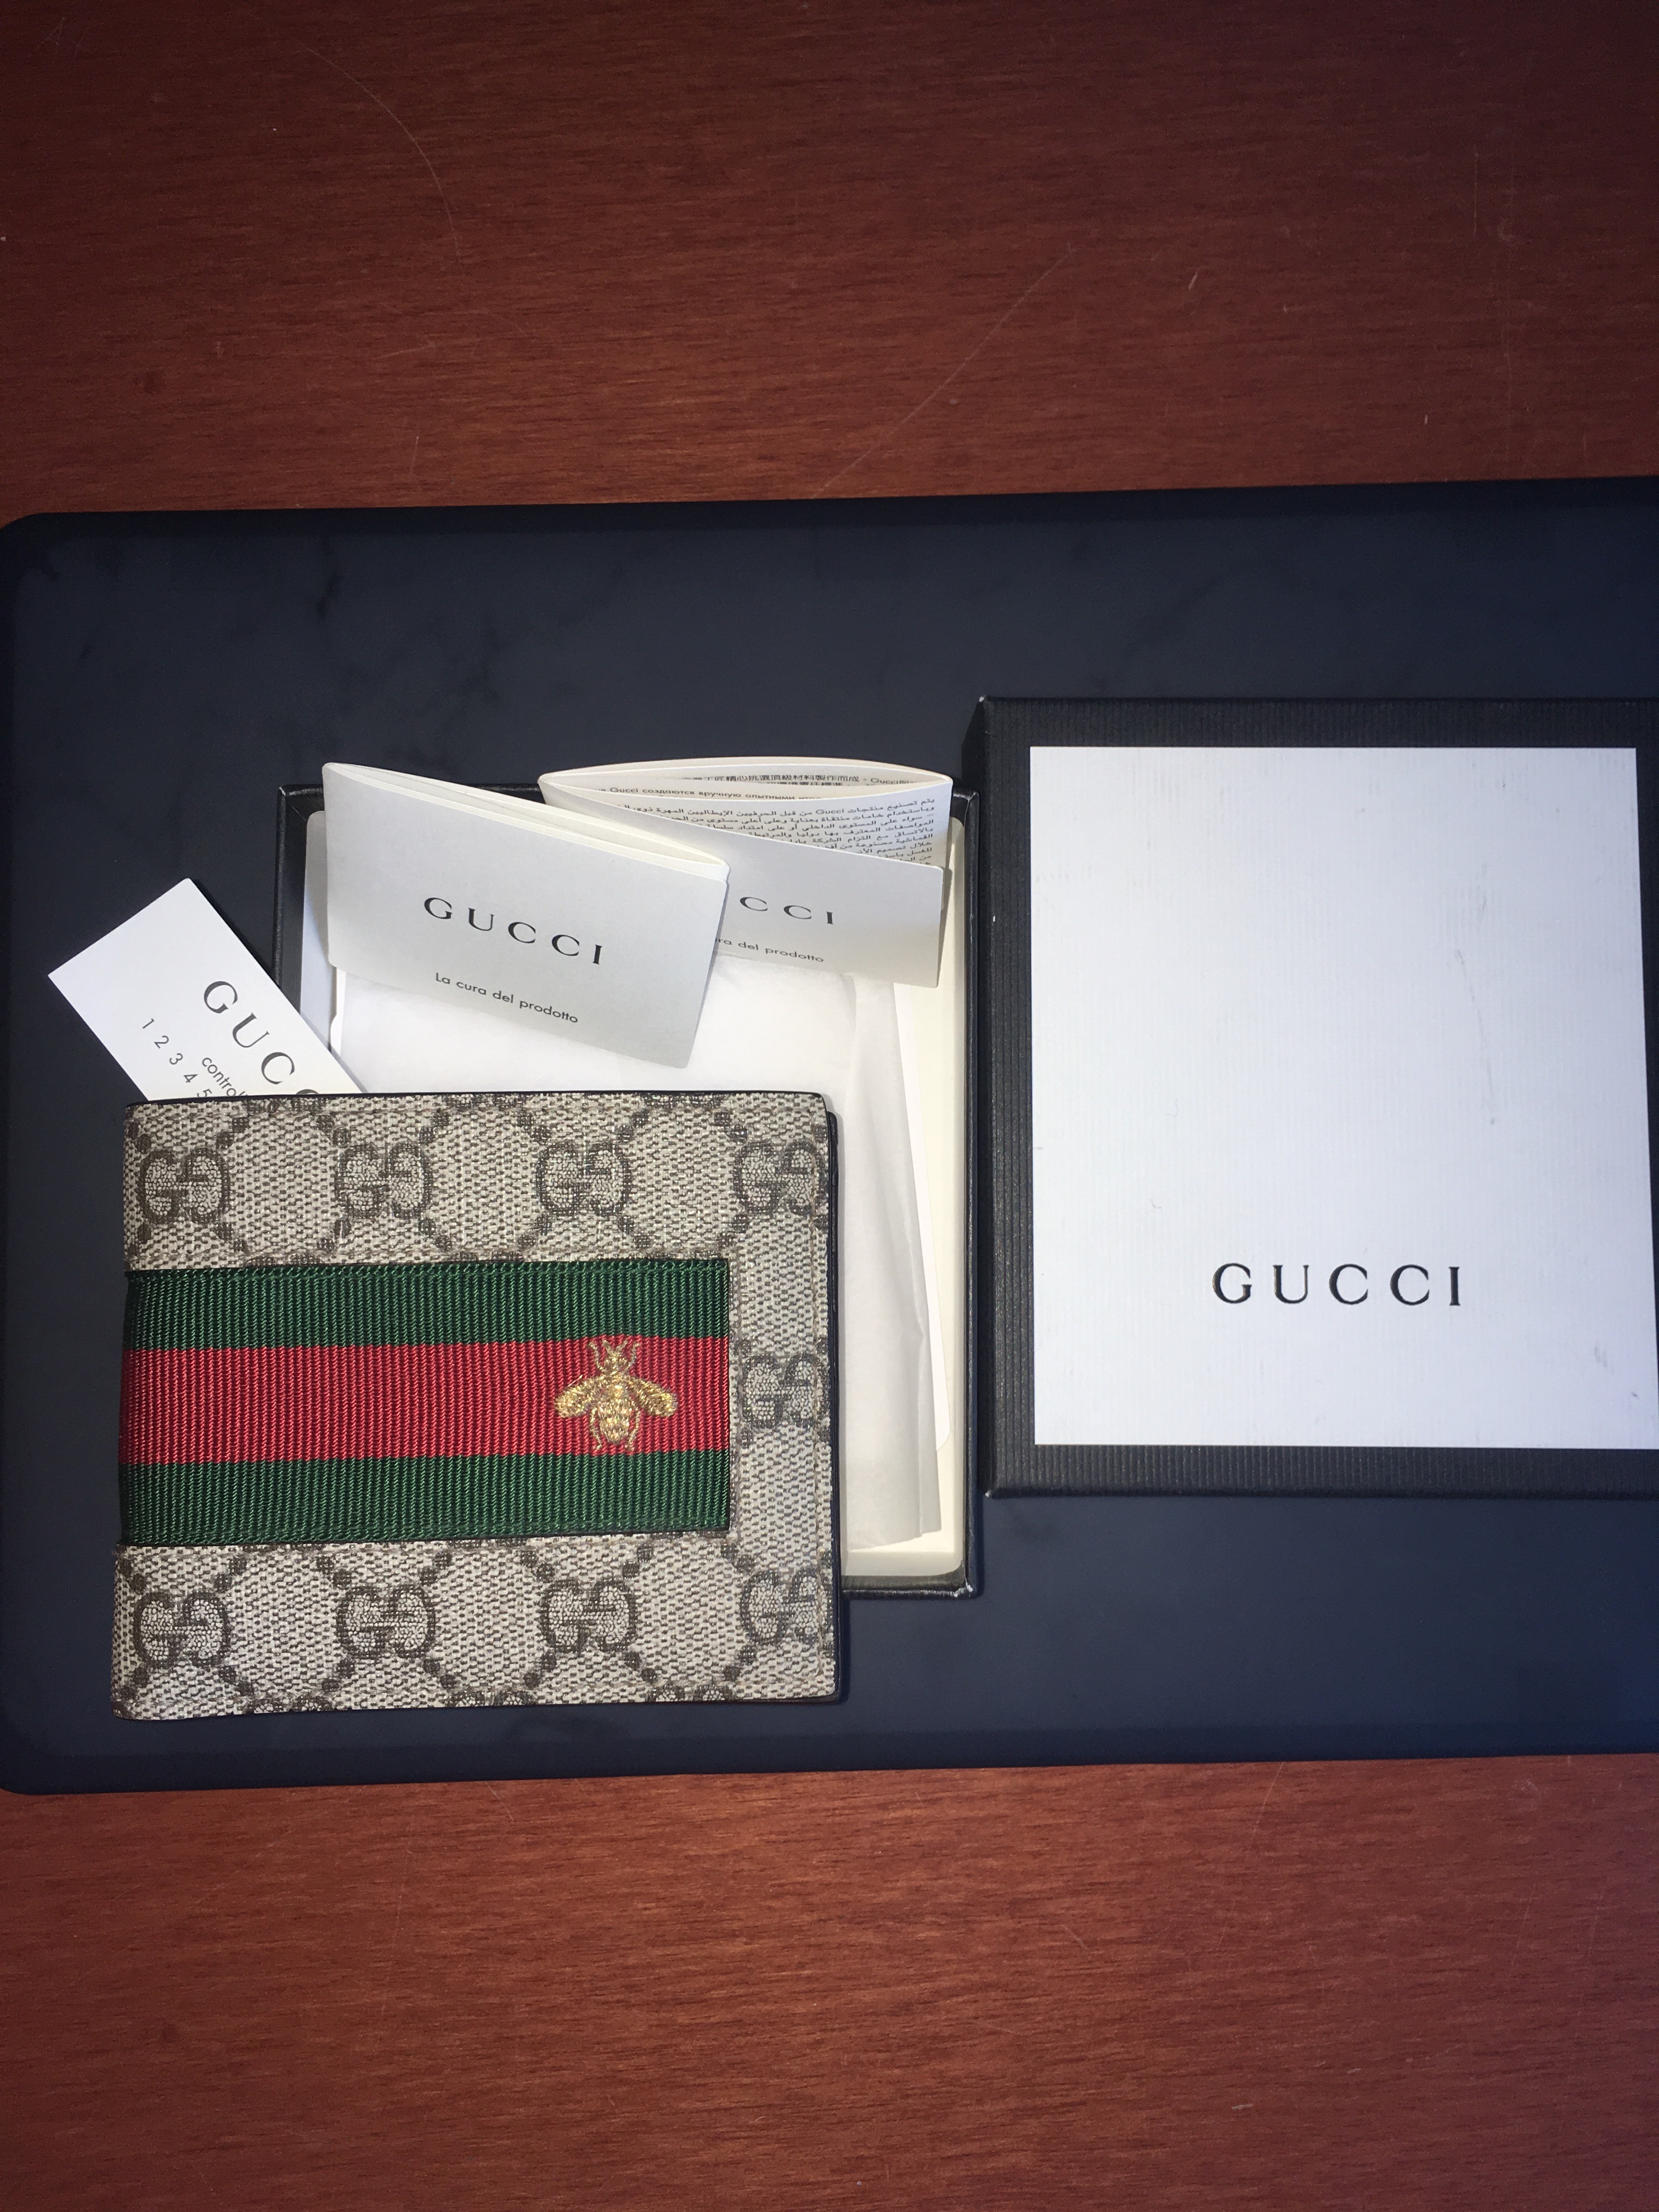 265f4e95983 Gucci Web GG Supreme Bi-Fold Wallet with Bee Size one size - Wallets for  Sale - Grailed